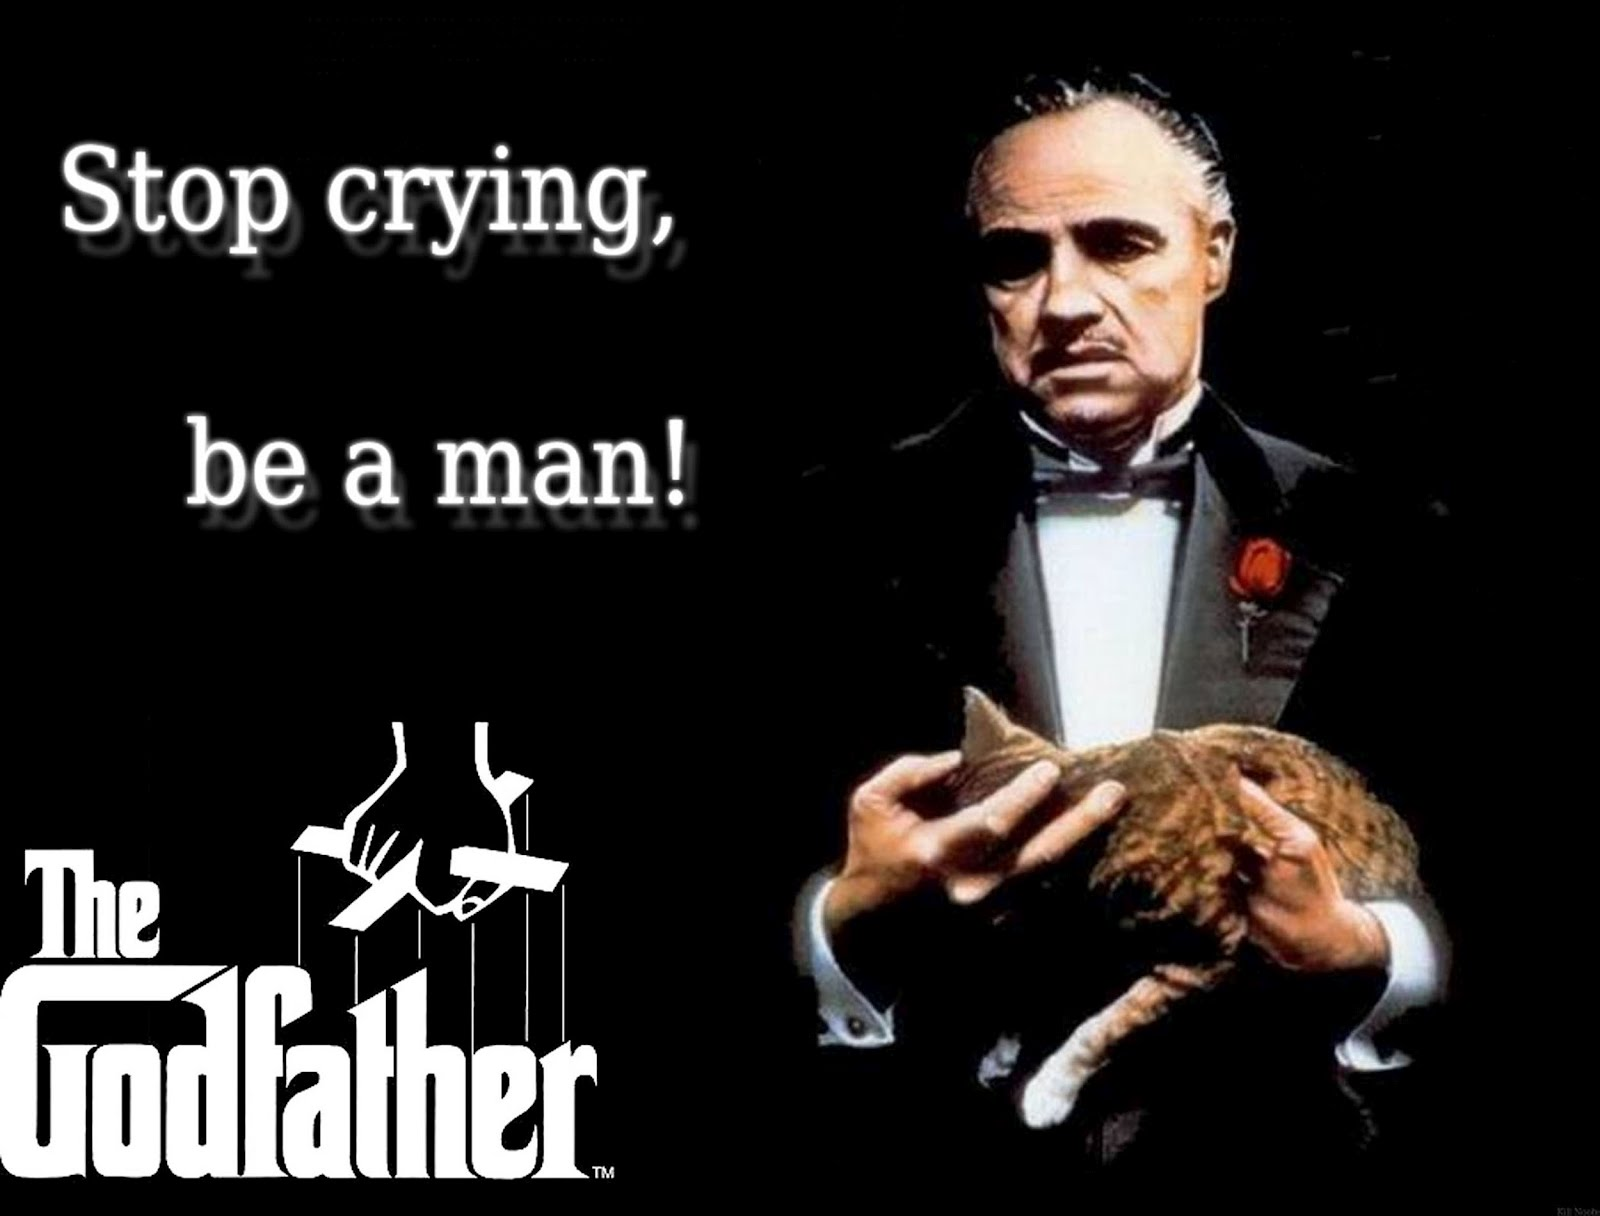 http://2.bp.blogspot.com/-sRimZMnr__A/UBPvkhxmMII/AAAAAAAAAmM/oifpLc0lPbk/s1600/The-Godfather1-Movie-Poster1.jpg